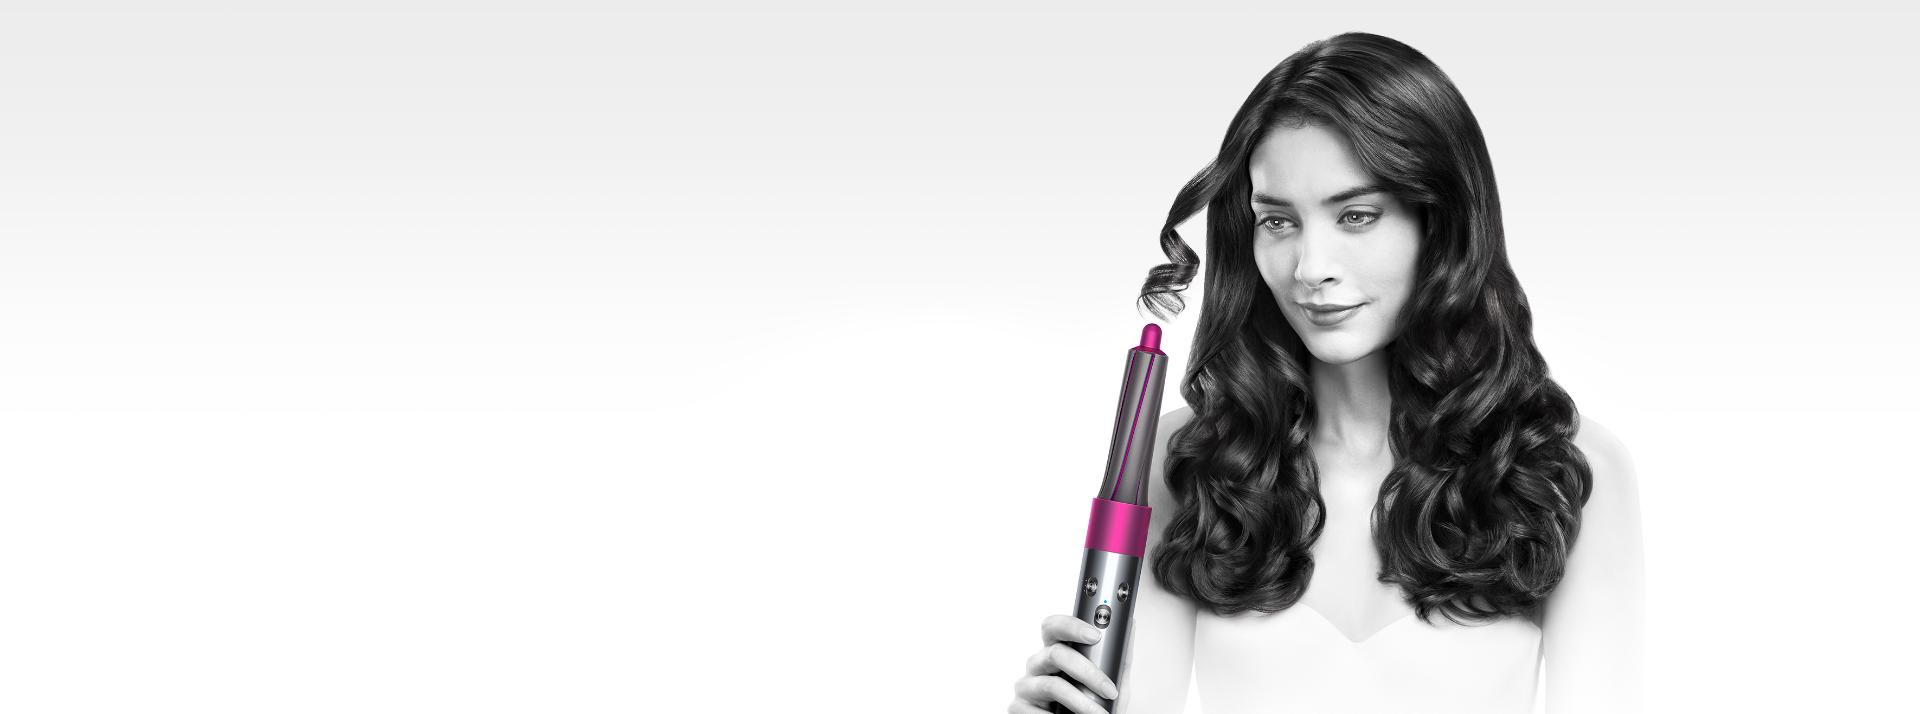 Model using Dyson airwrap styler